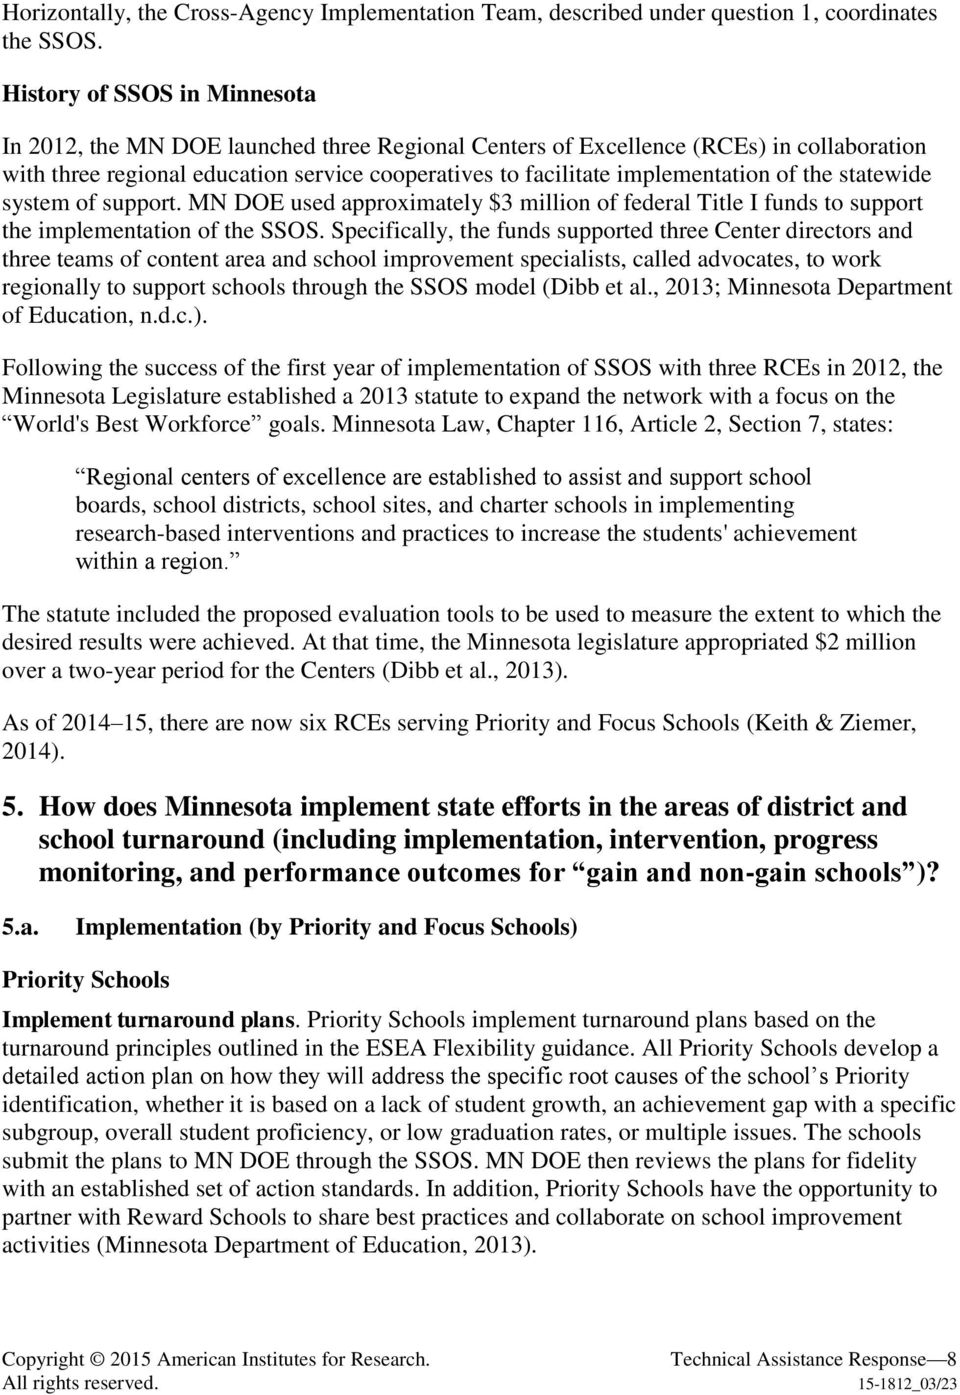 of the statewide system of support. MN DOE used approximately $3 million of federal Title I funds to support the implementation of the SSOS.